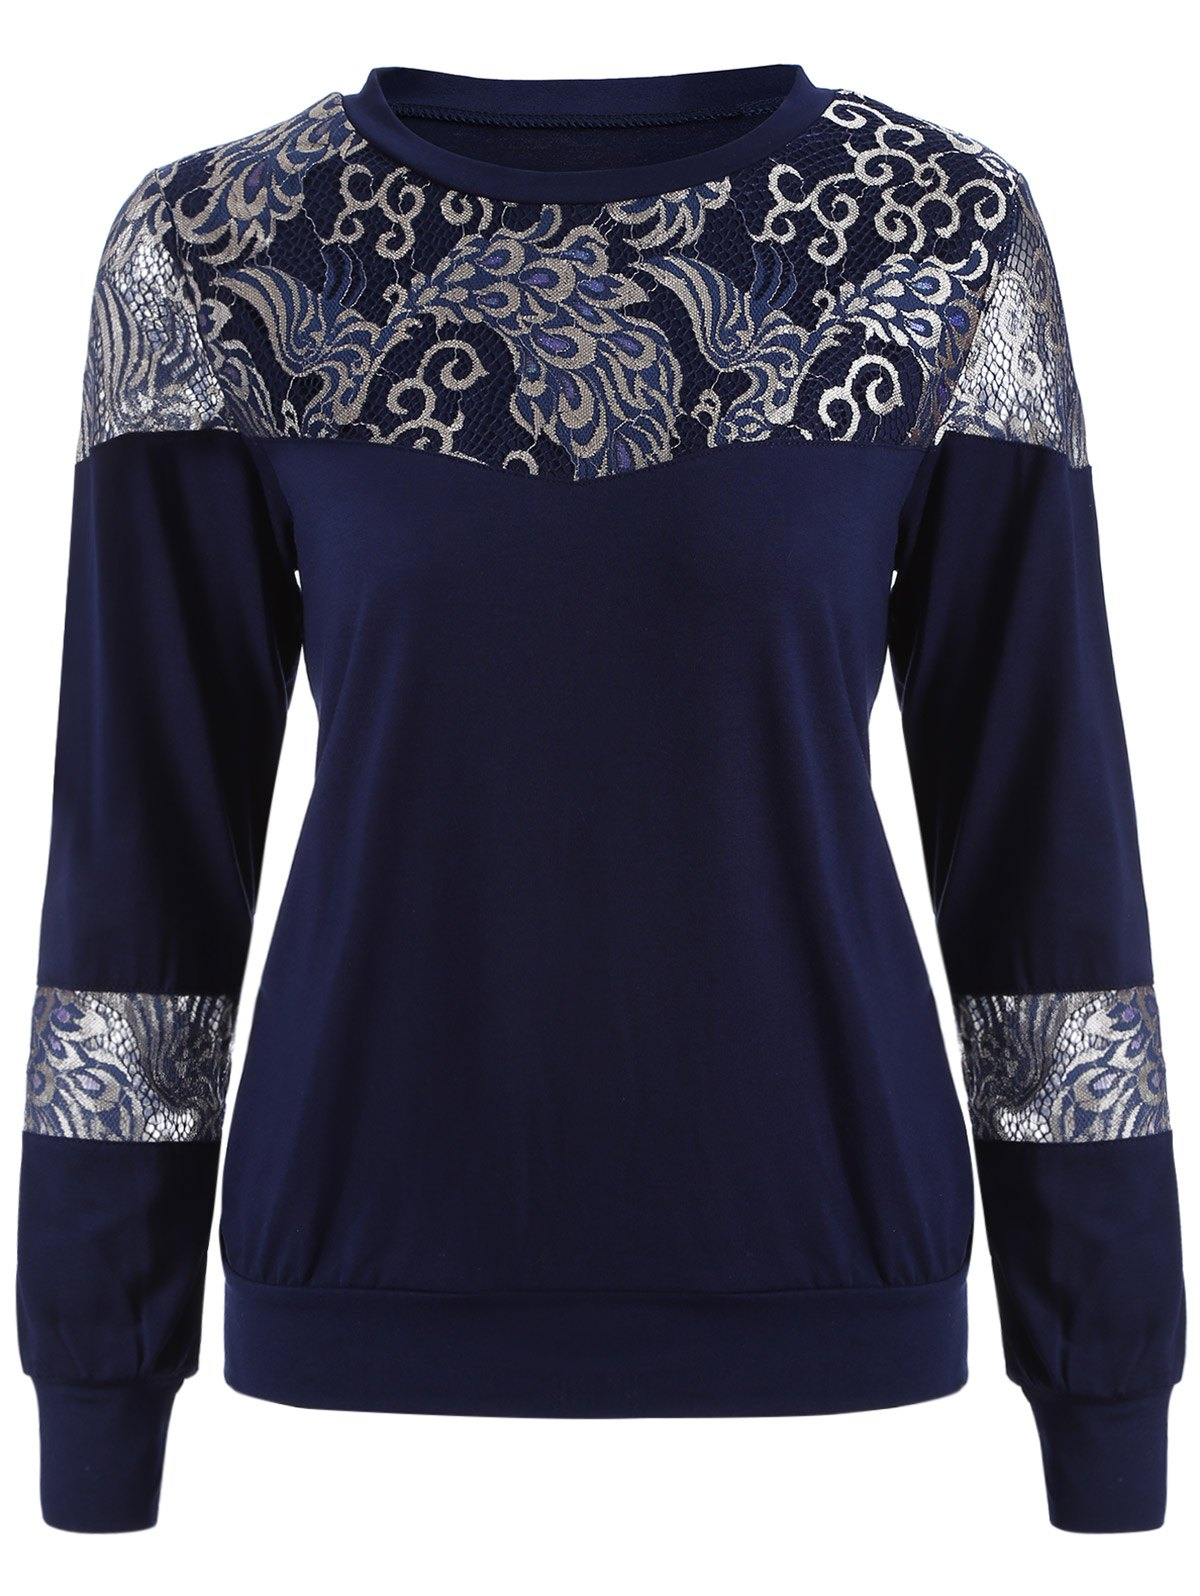 Loose Embroidered Lace Spliced TeeWomen<br><br><br>Size: 2XL<br>Color: PURPLISH BLUE